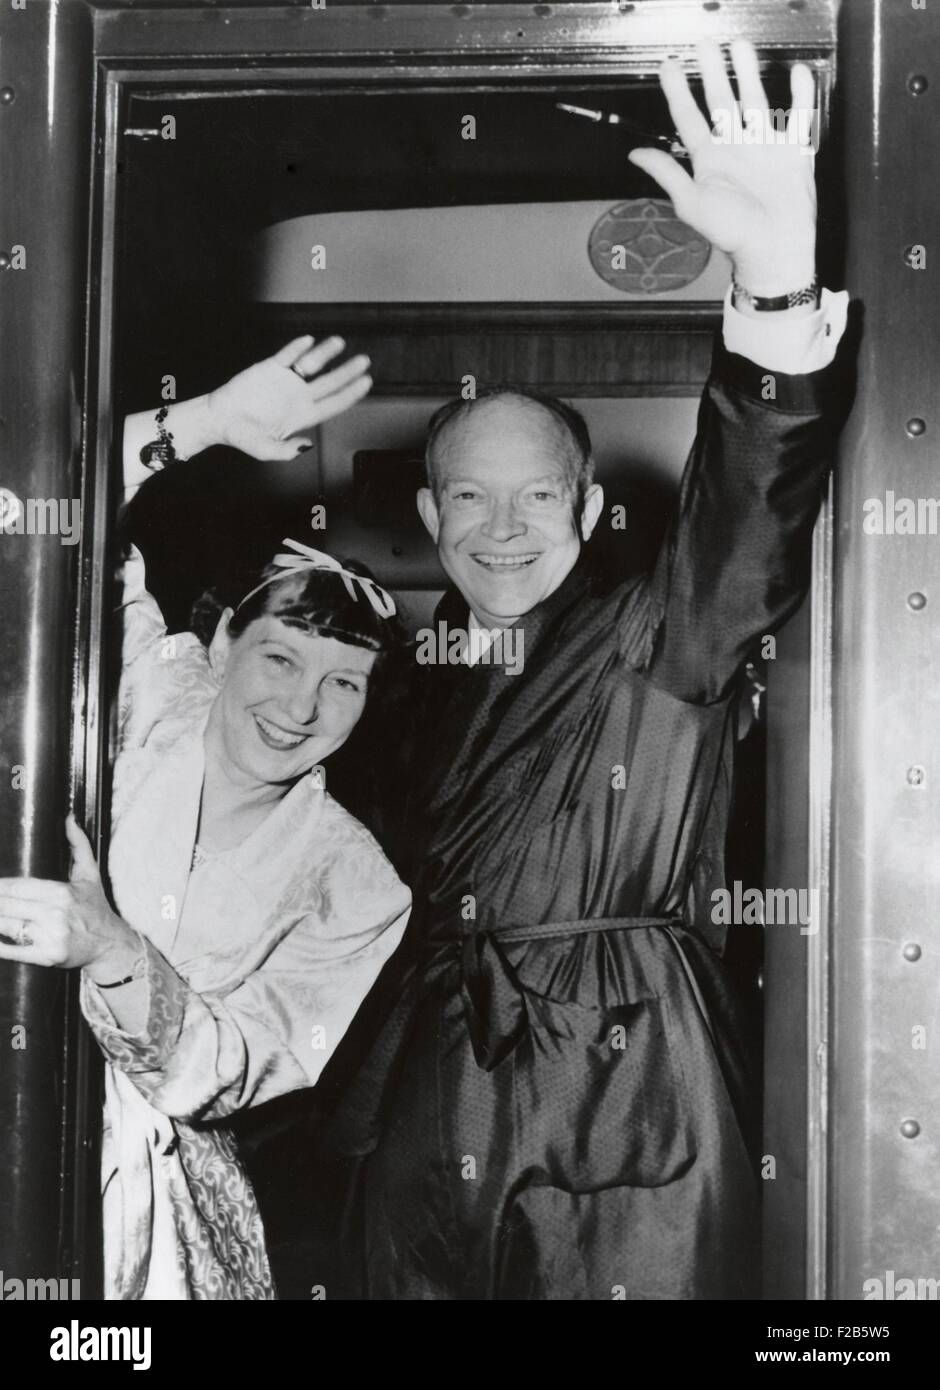 Republican Presidential candidate Dwight Eisenhower and Wife Mamie wave from their campaign train. July-Nov. 1952. - Stock Image